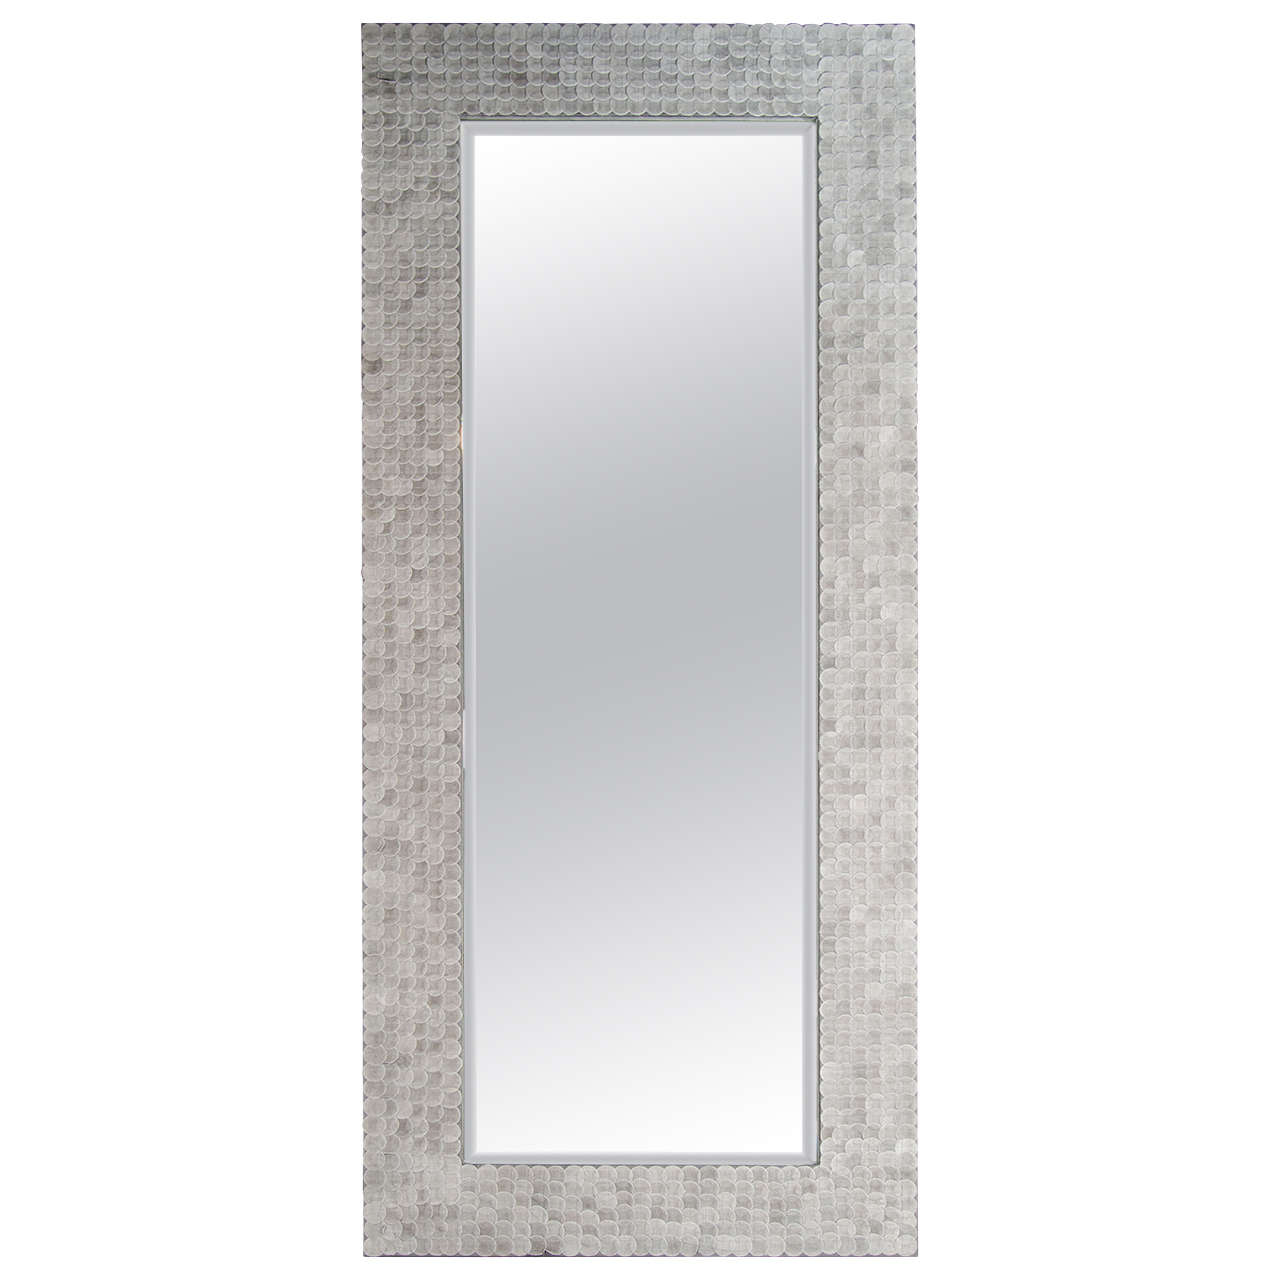 Modern Rectangular Full Length Mirror With Suede Frame Design For